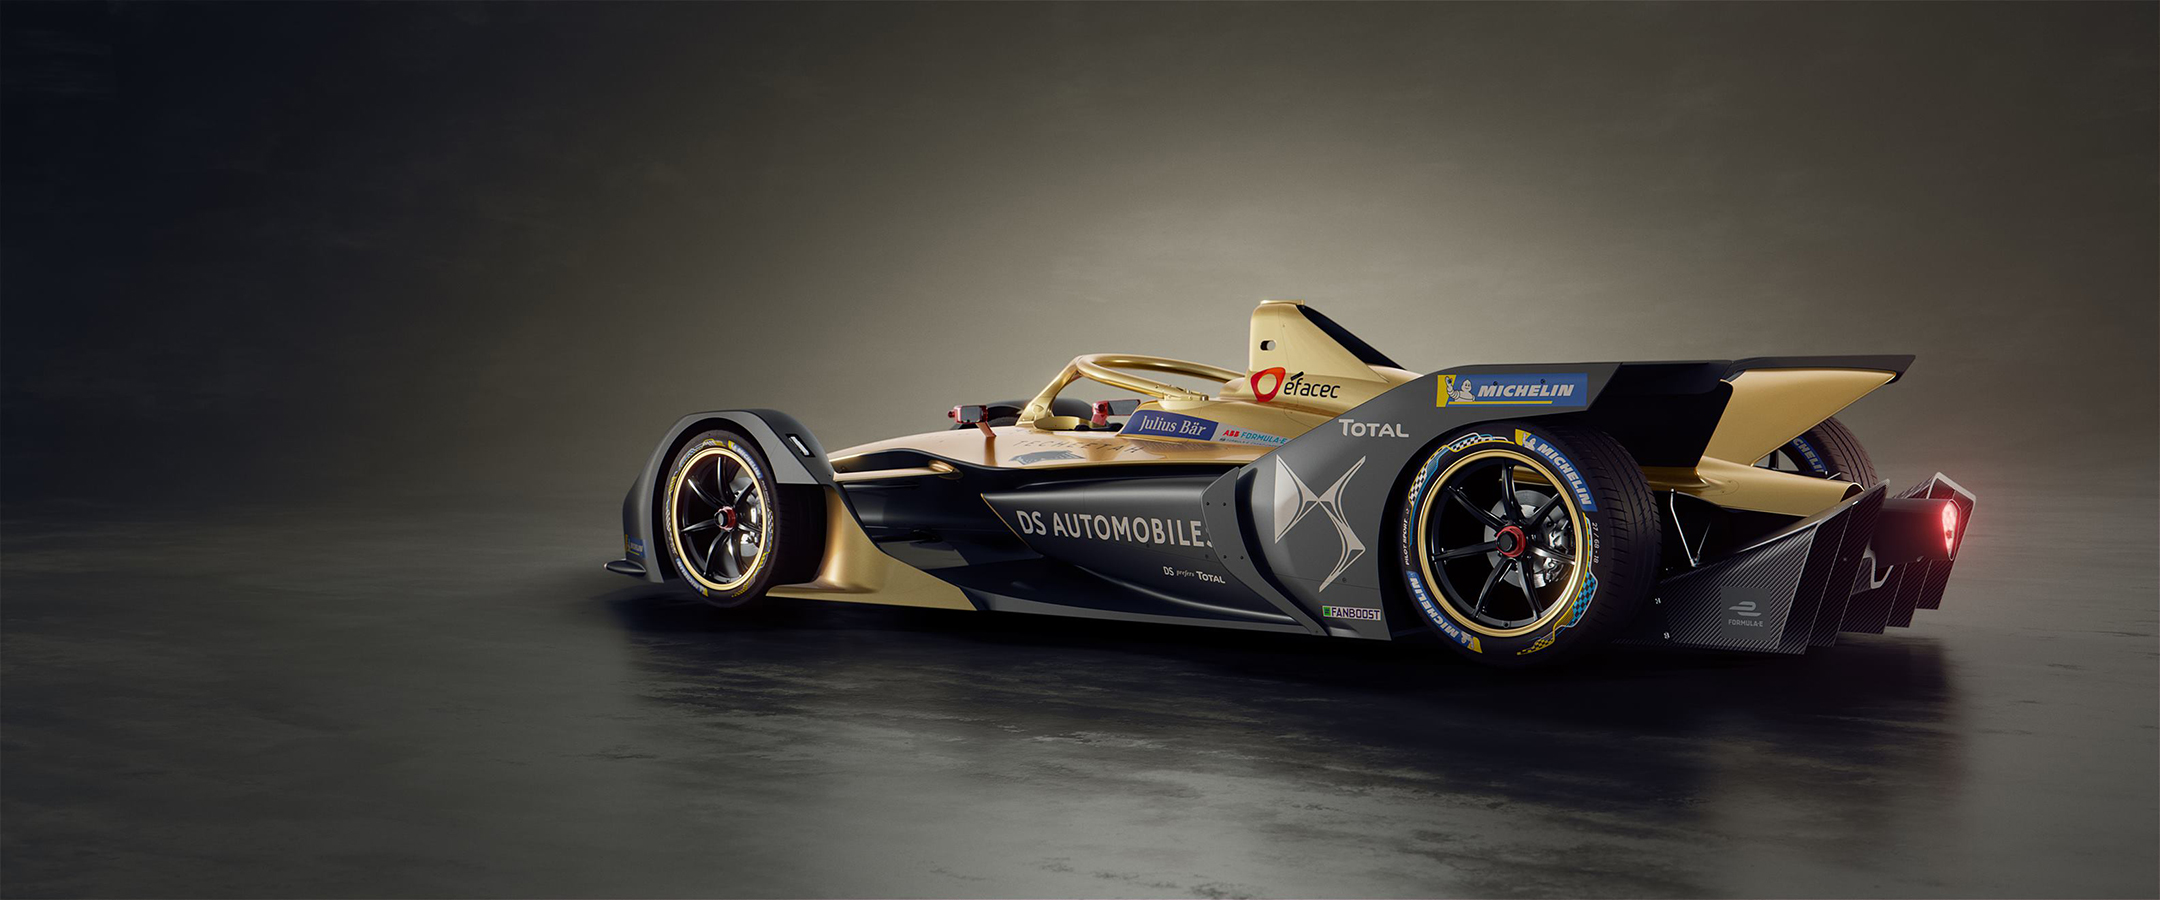 DS Techeetah E-TENSE - FormulaE 2018/2019 - rear side-face